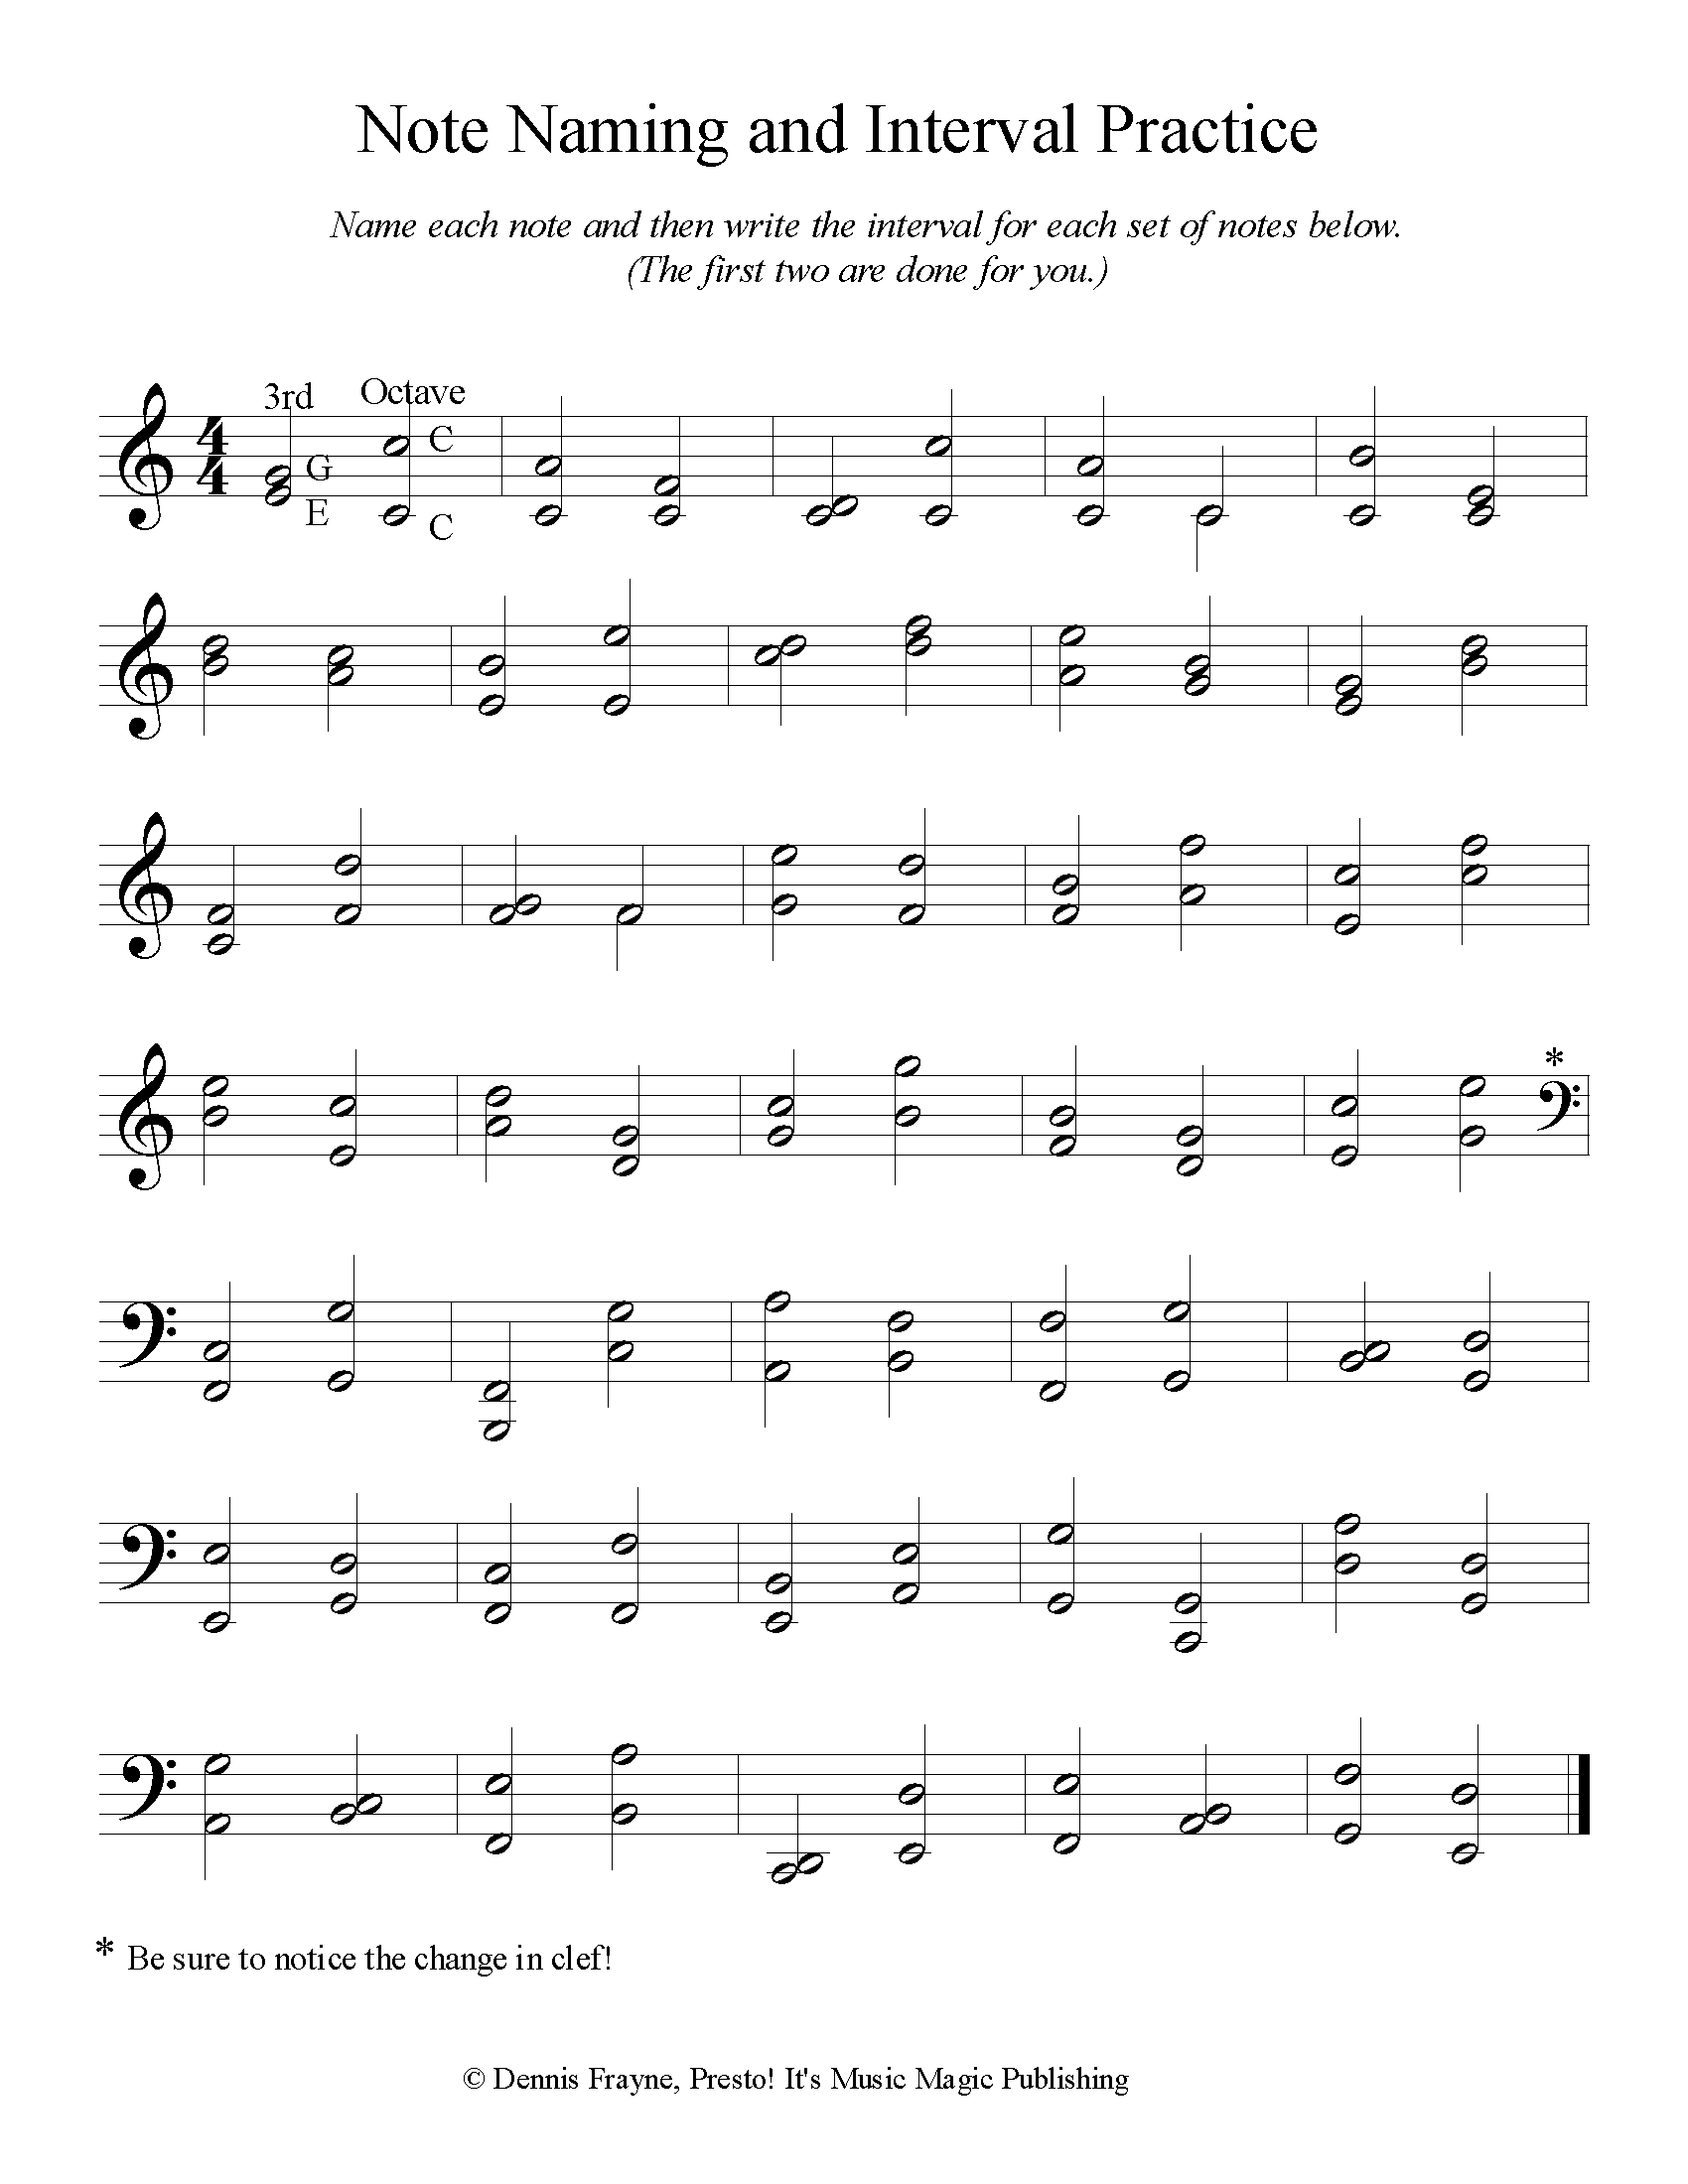 Grand Staff Note Naming and Intervals Practice 1 page